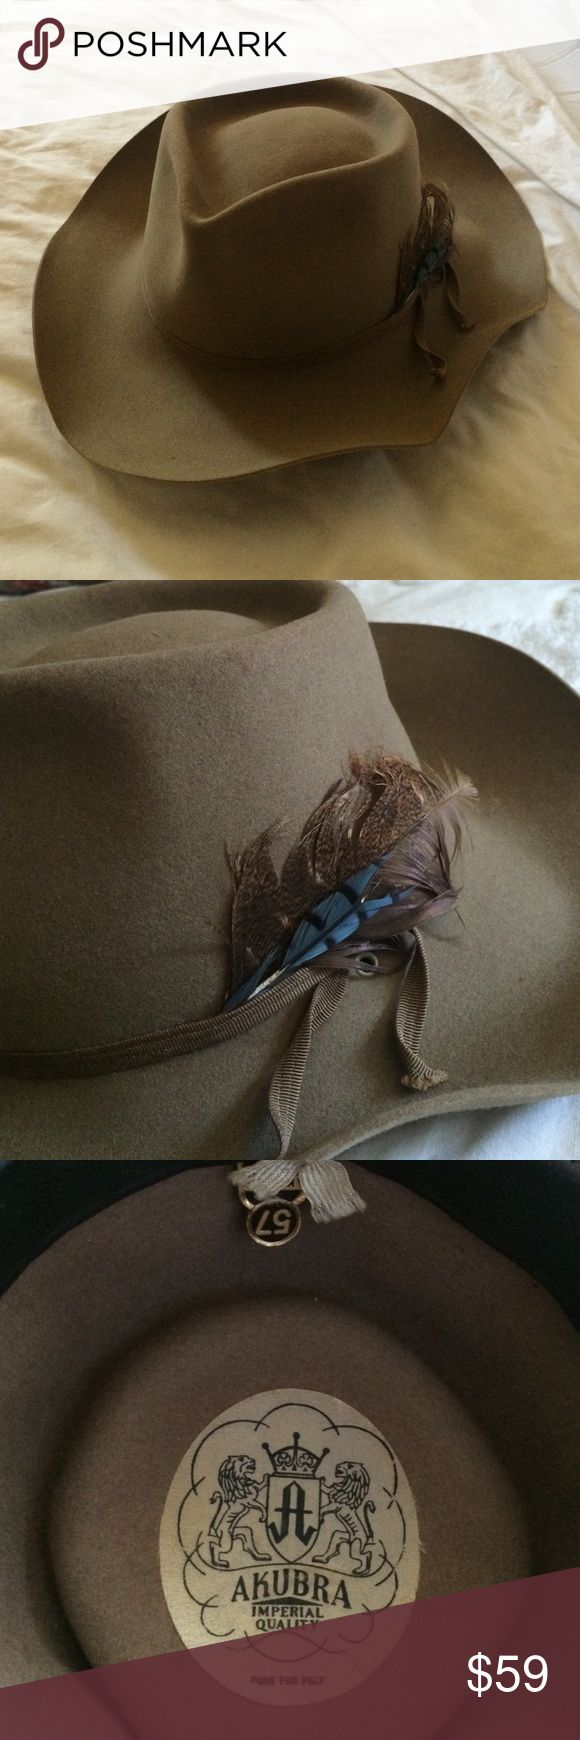 """Akubra """"Snowy River"""" pure fur felt wide brim hat Excellent condition.  This brand hat is worn by musicians like James Bay.  They retail for over $150.  Interior had leather lining.  This will fit a women's small to medium size head.  Will fit a man size small head.  You can google sizes to get accuracy of what a size 57 hat measures. Akubra Accessories Hats"""